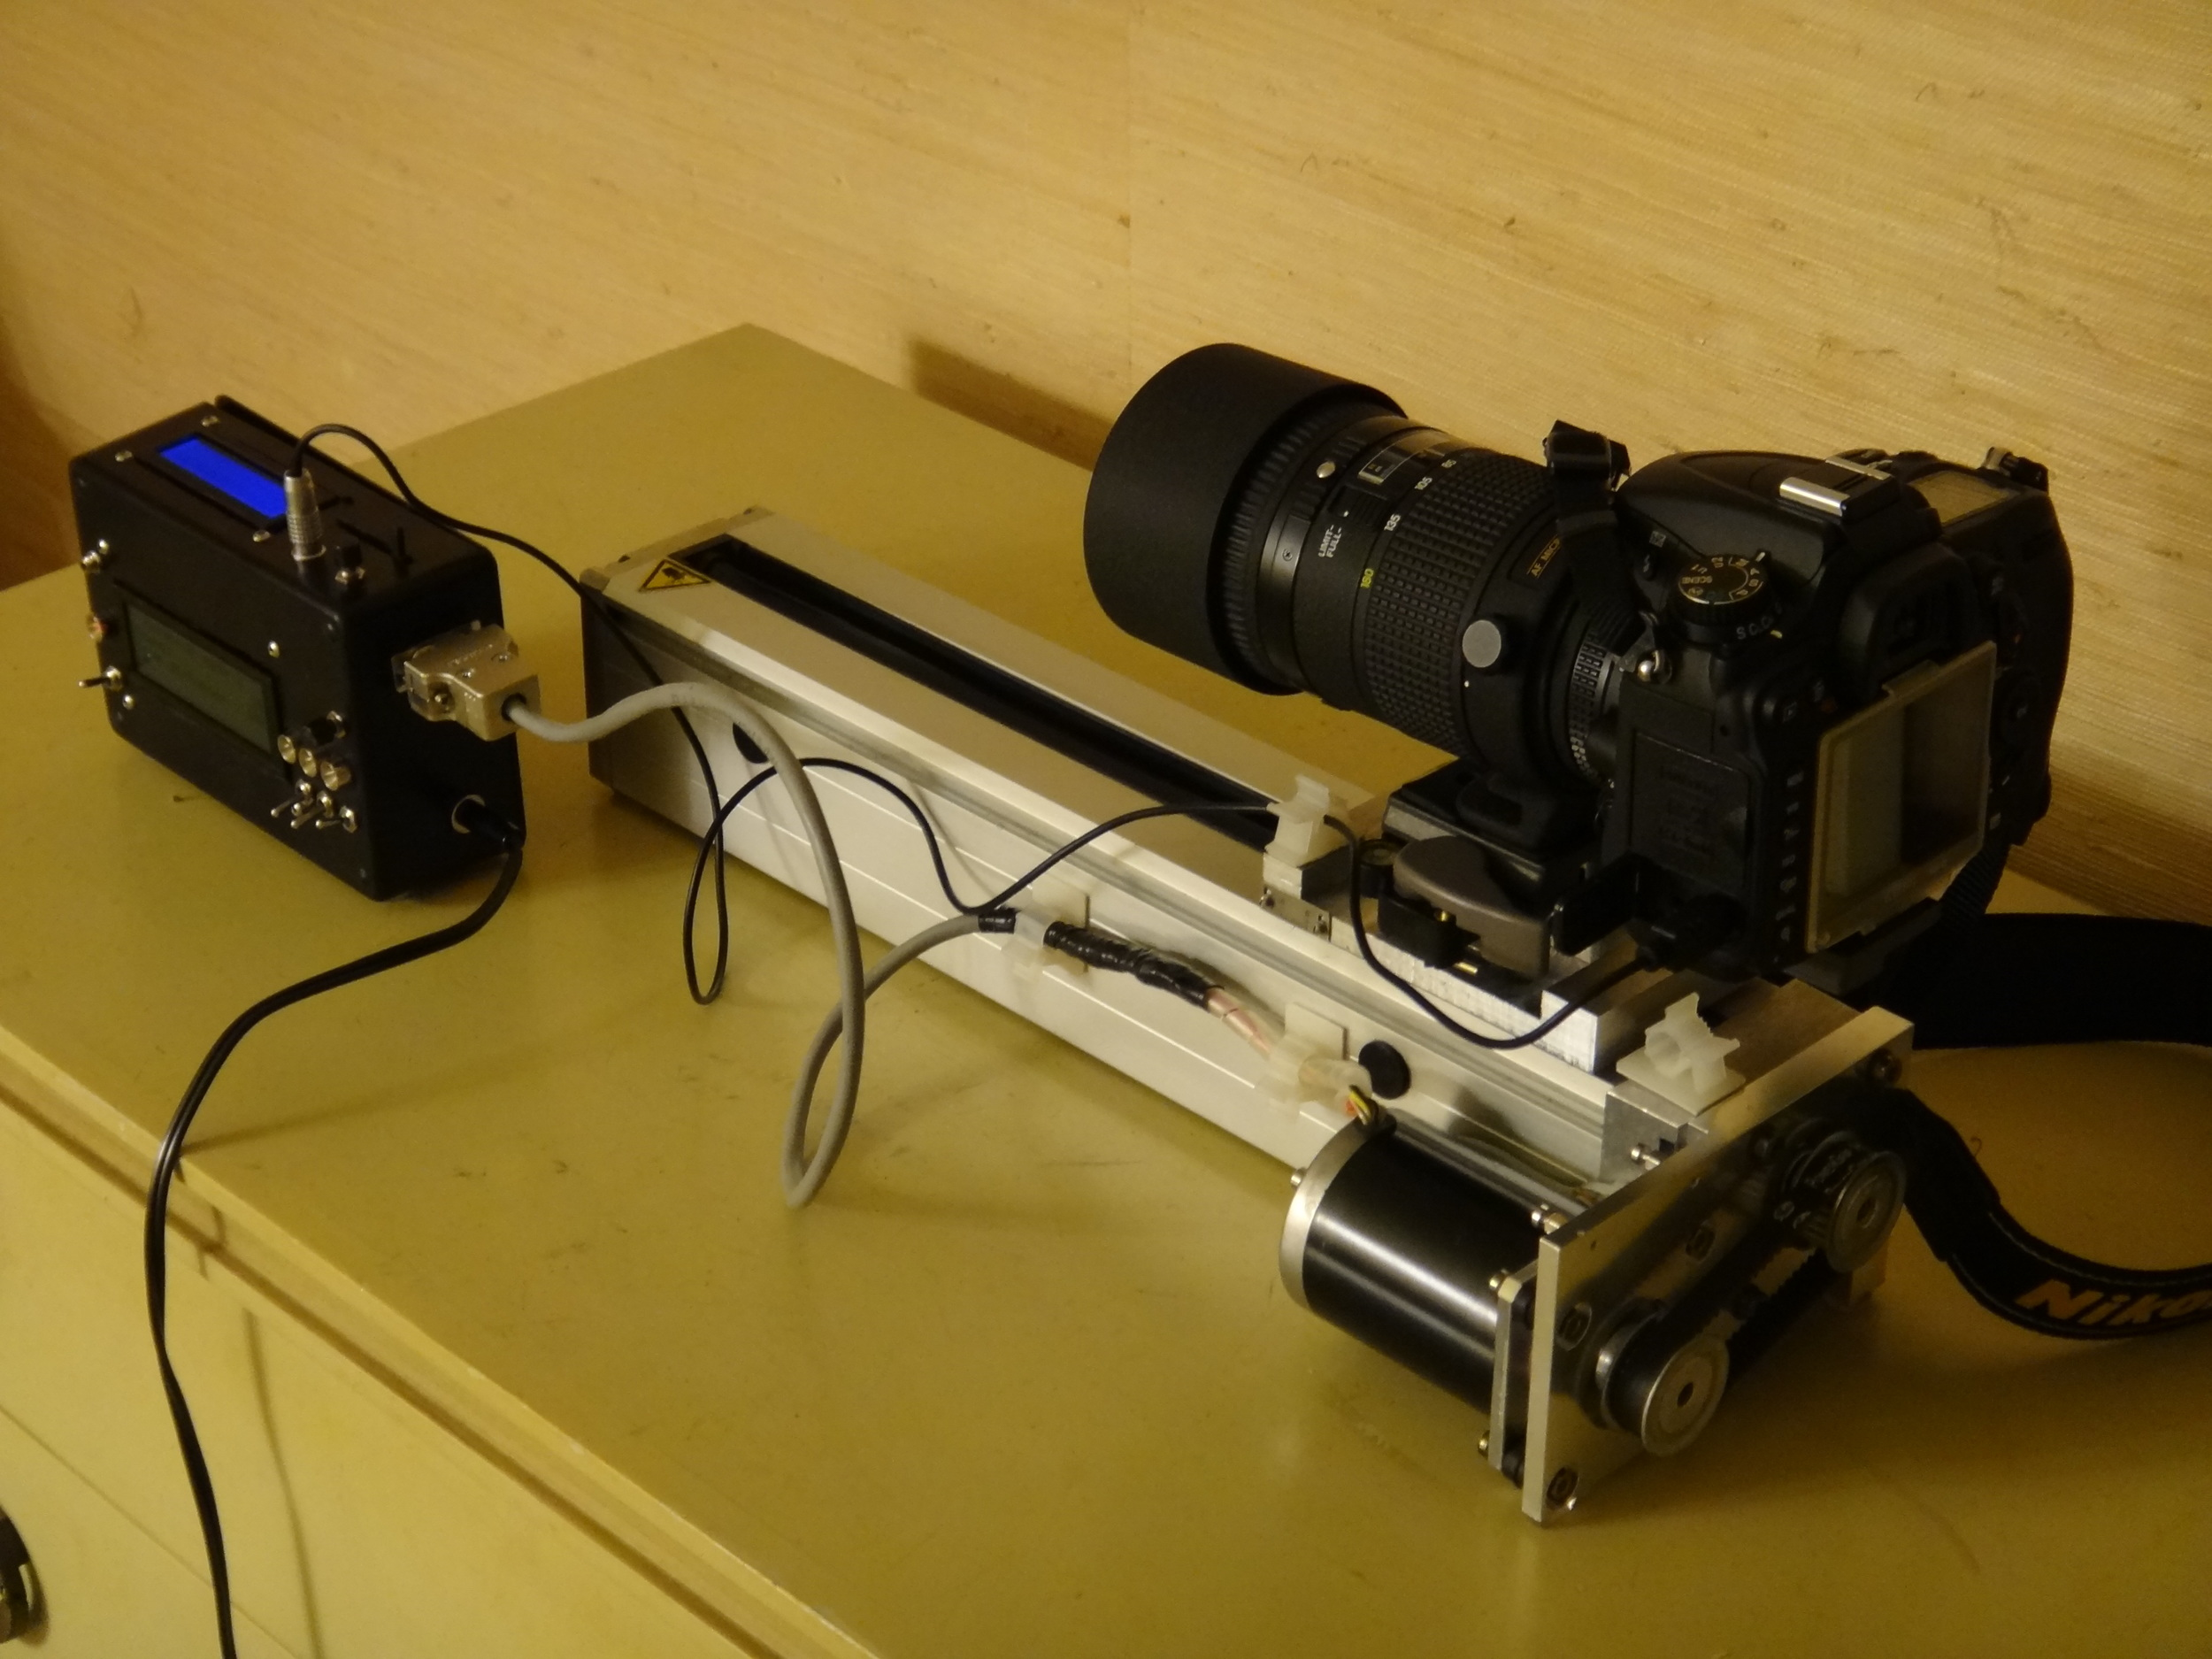 The completed rail, with mounted camera.